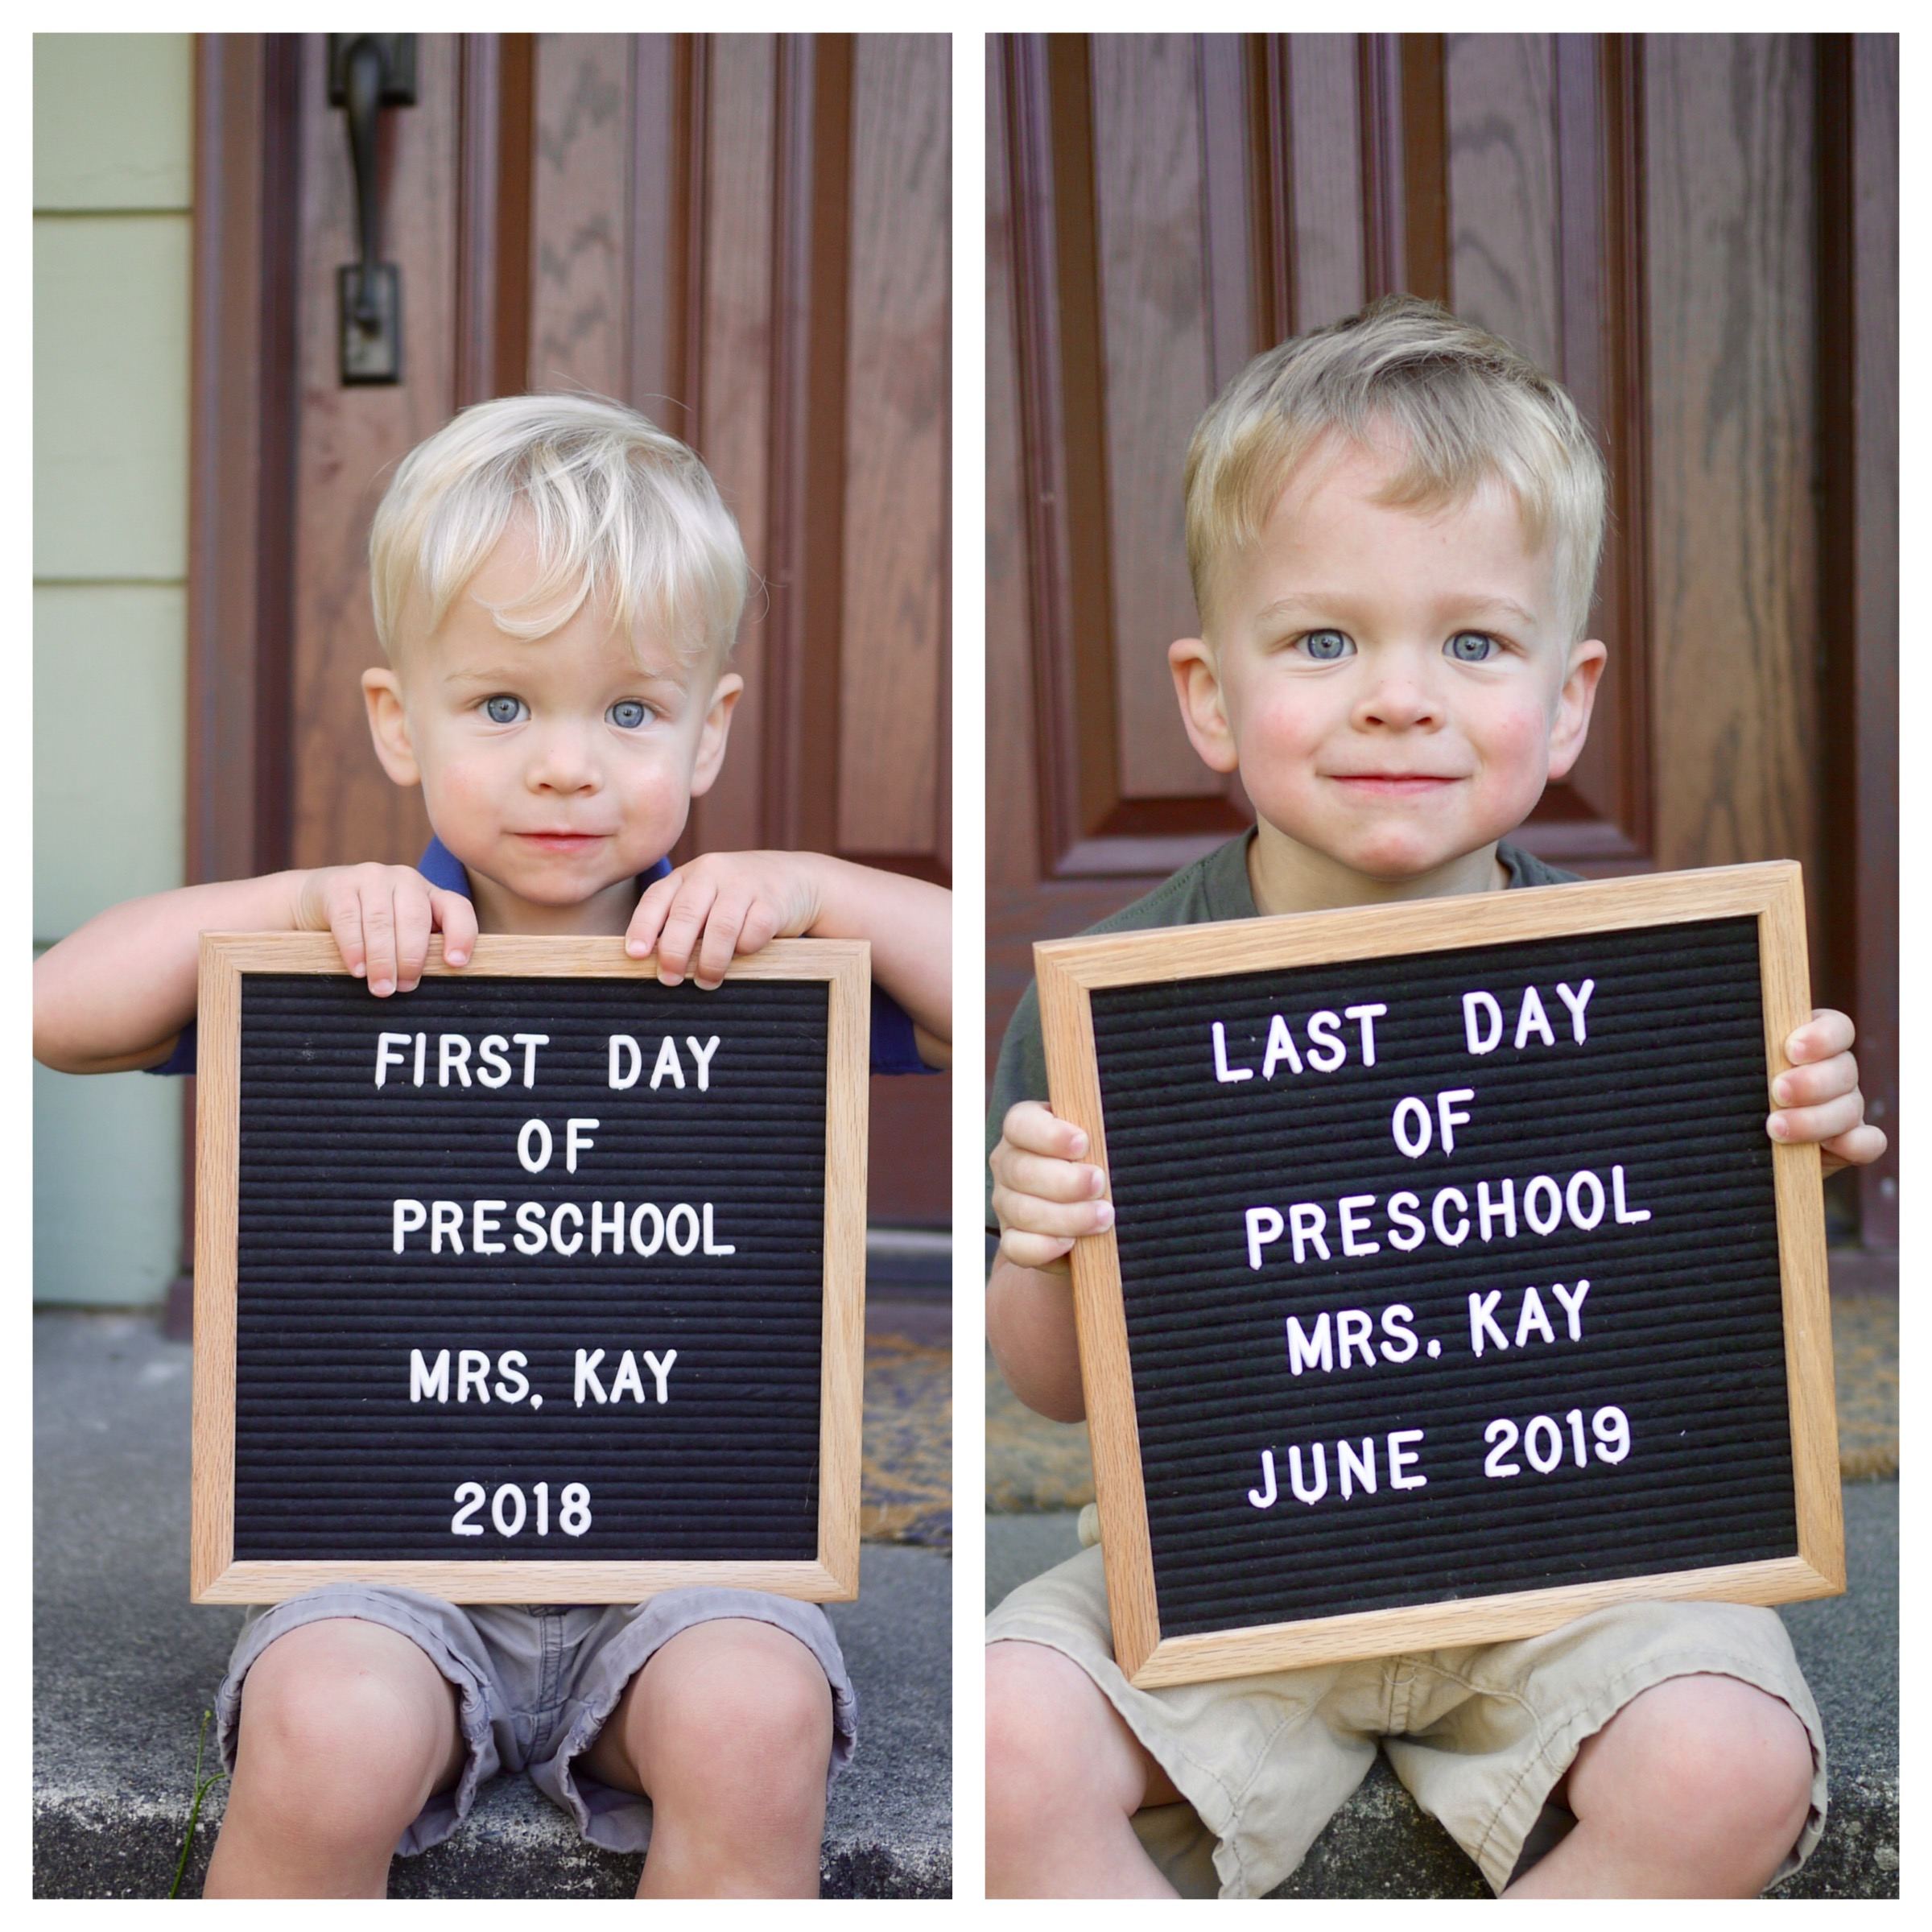 Caleb's first and last day of preschool